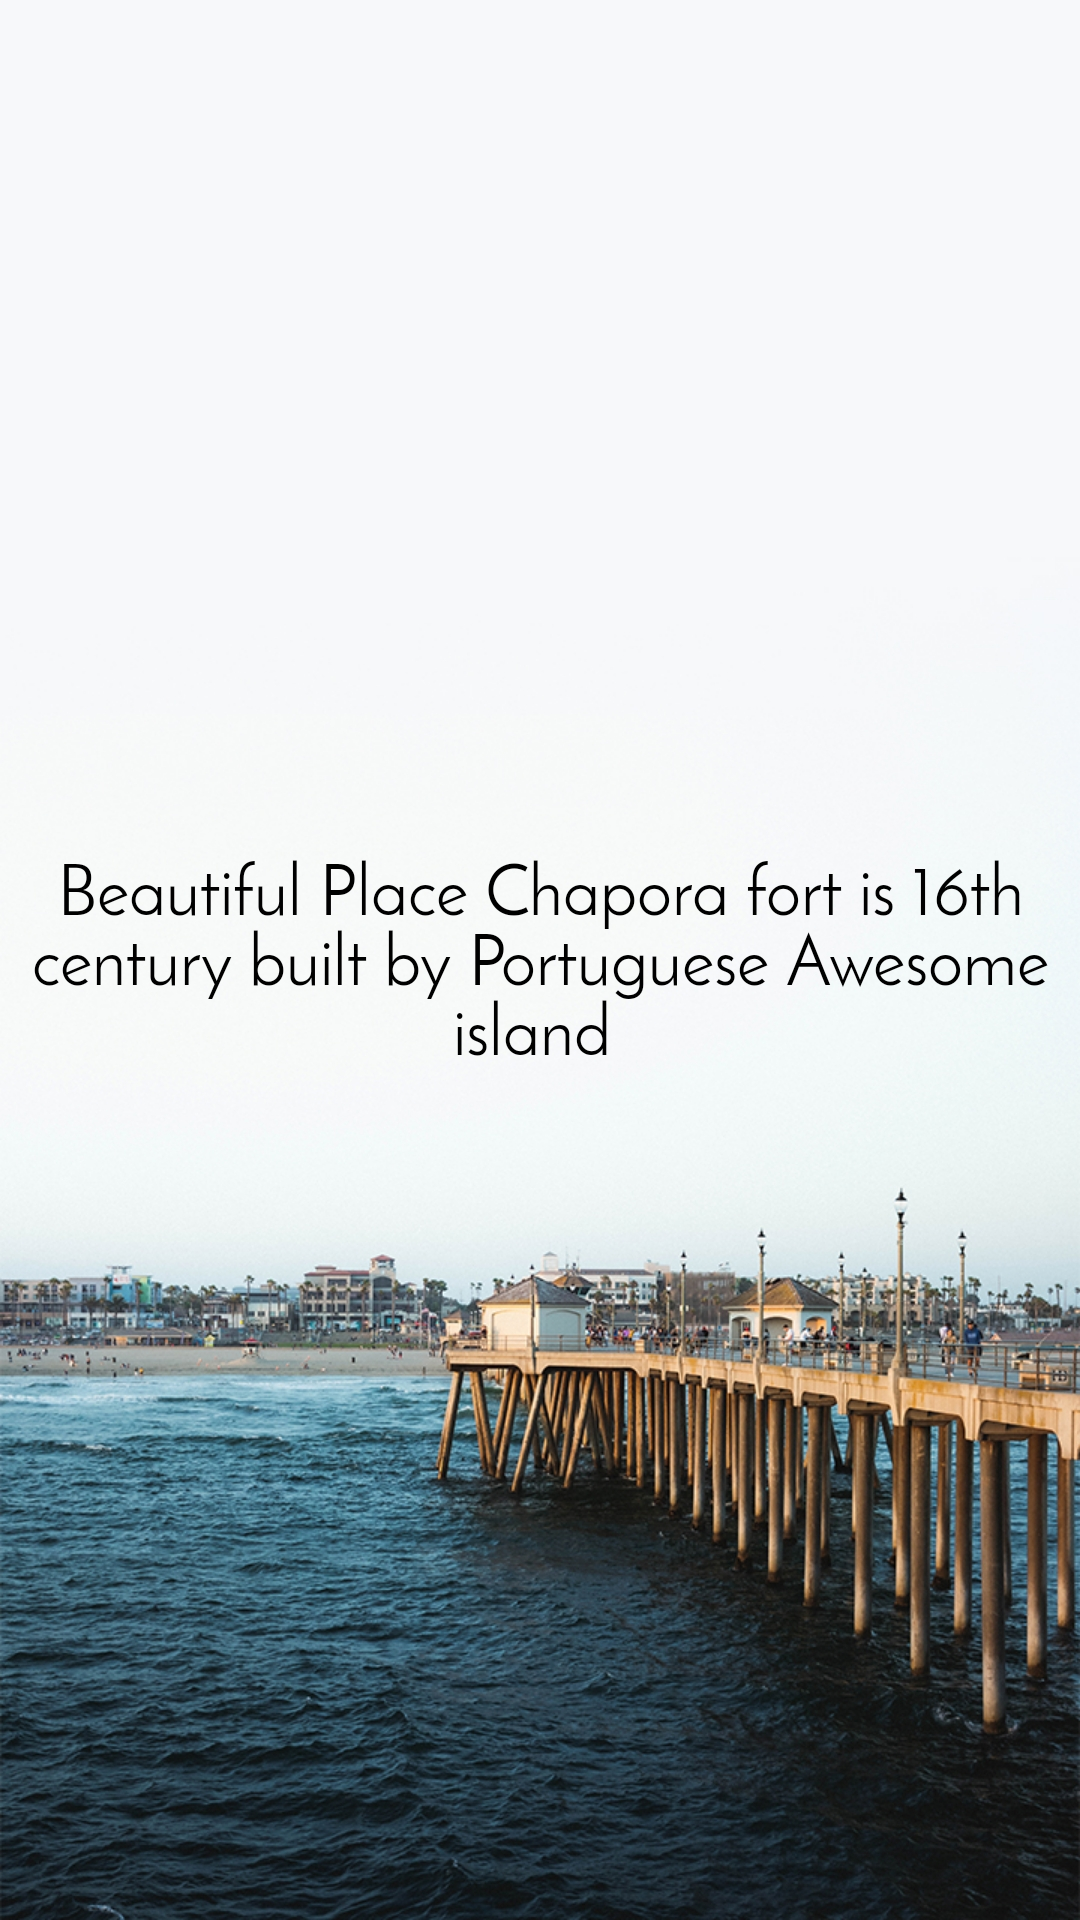 Beautiful Place Chapora fort is 16th century built by Portuguese Awesome island